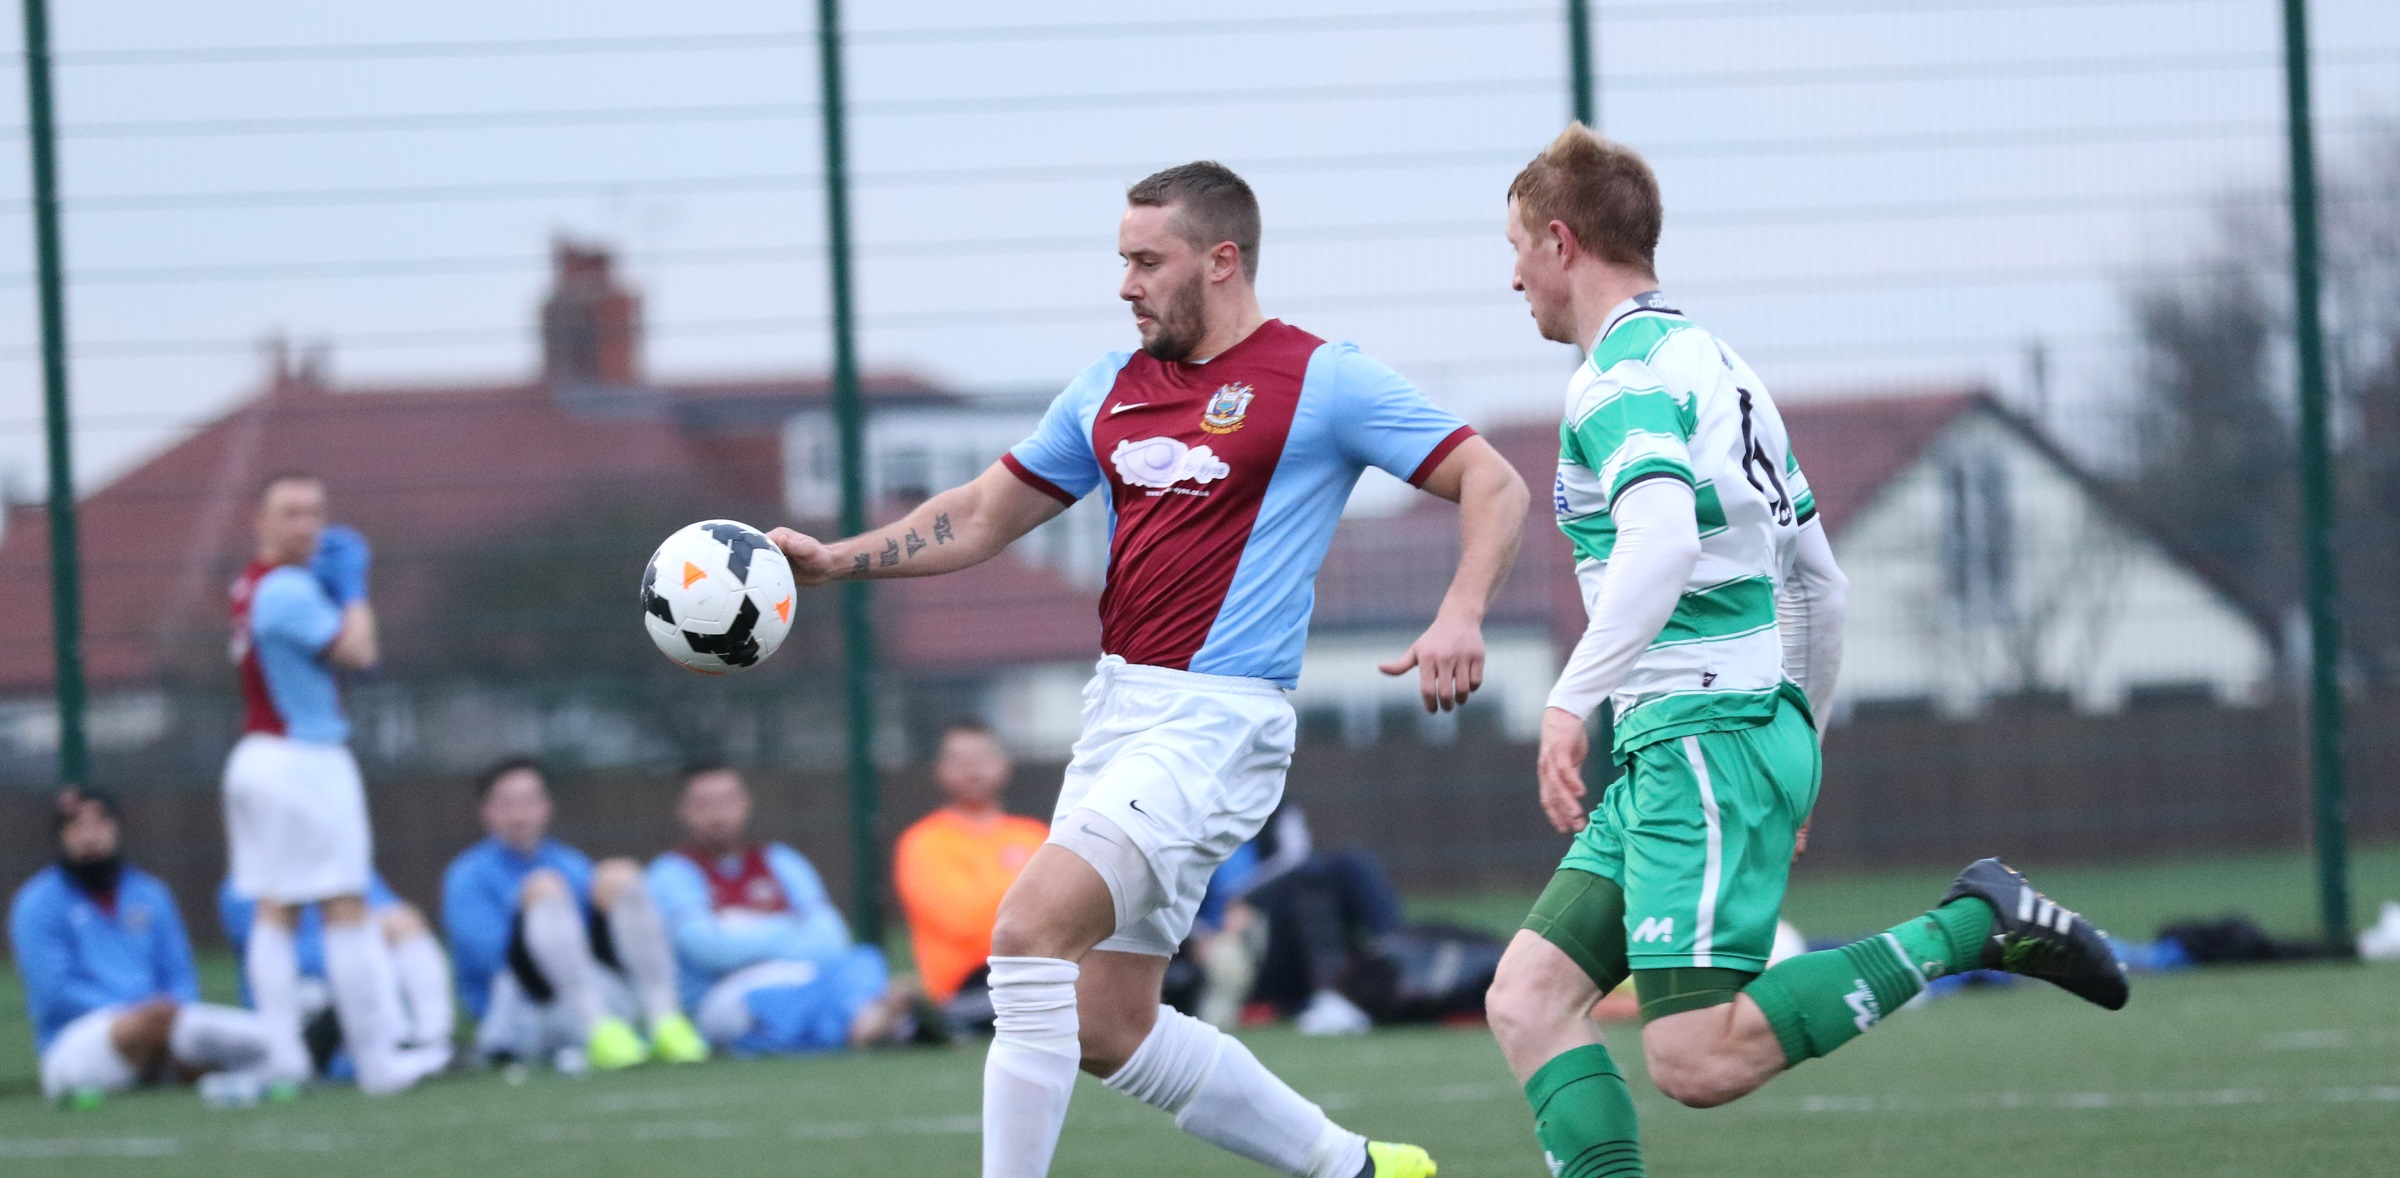 In Pictures: South Shields 3-1 West Allotment Celtic